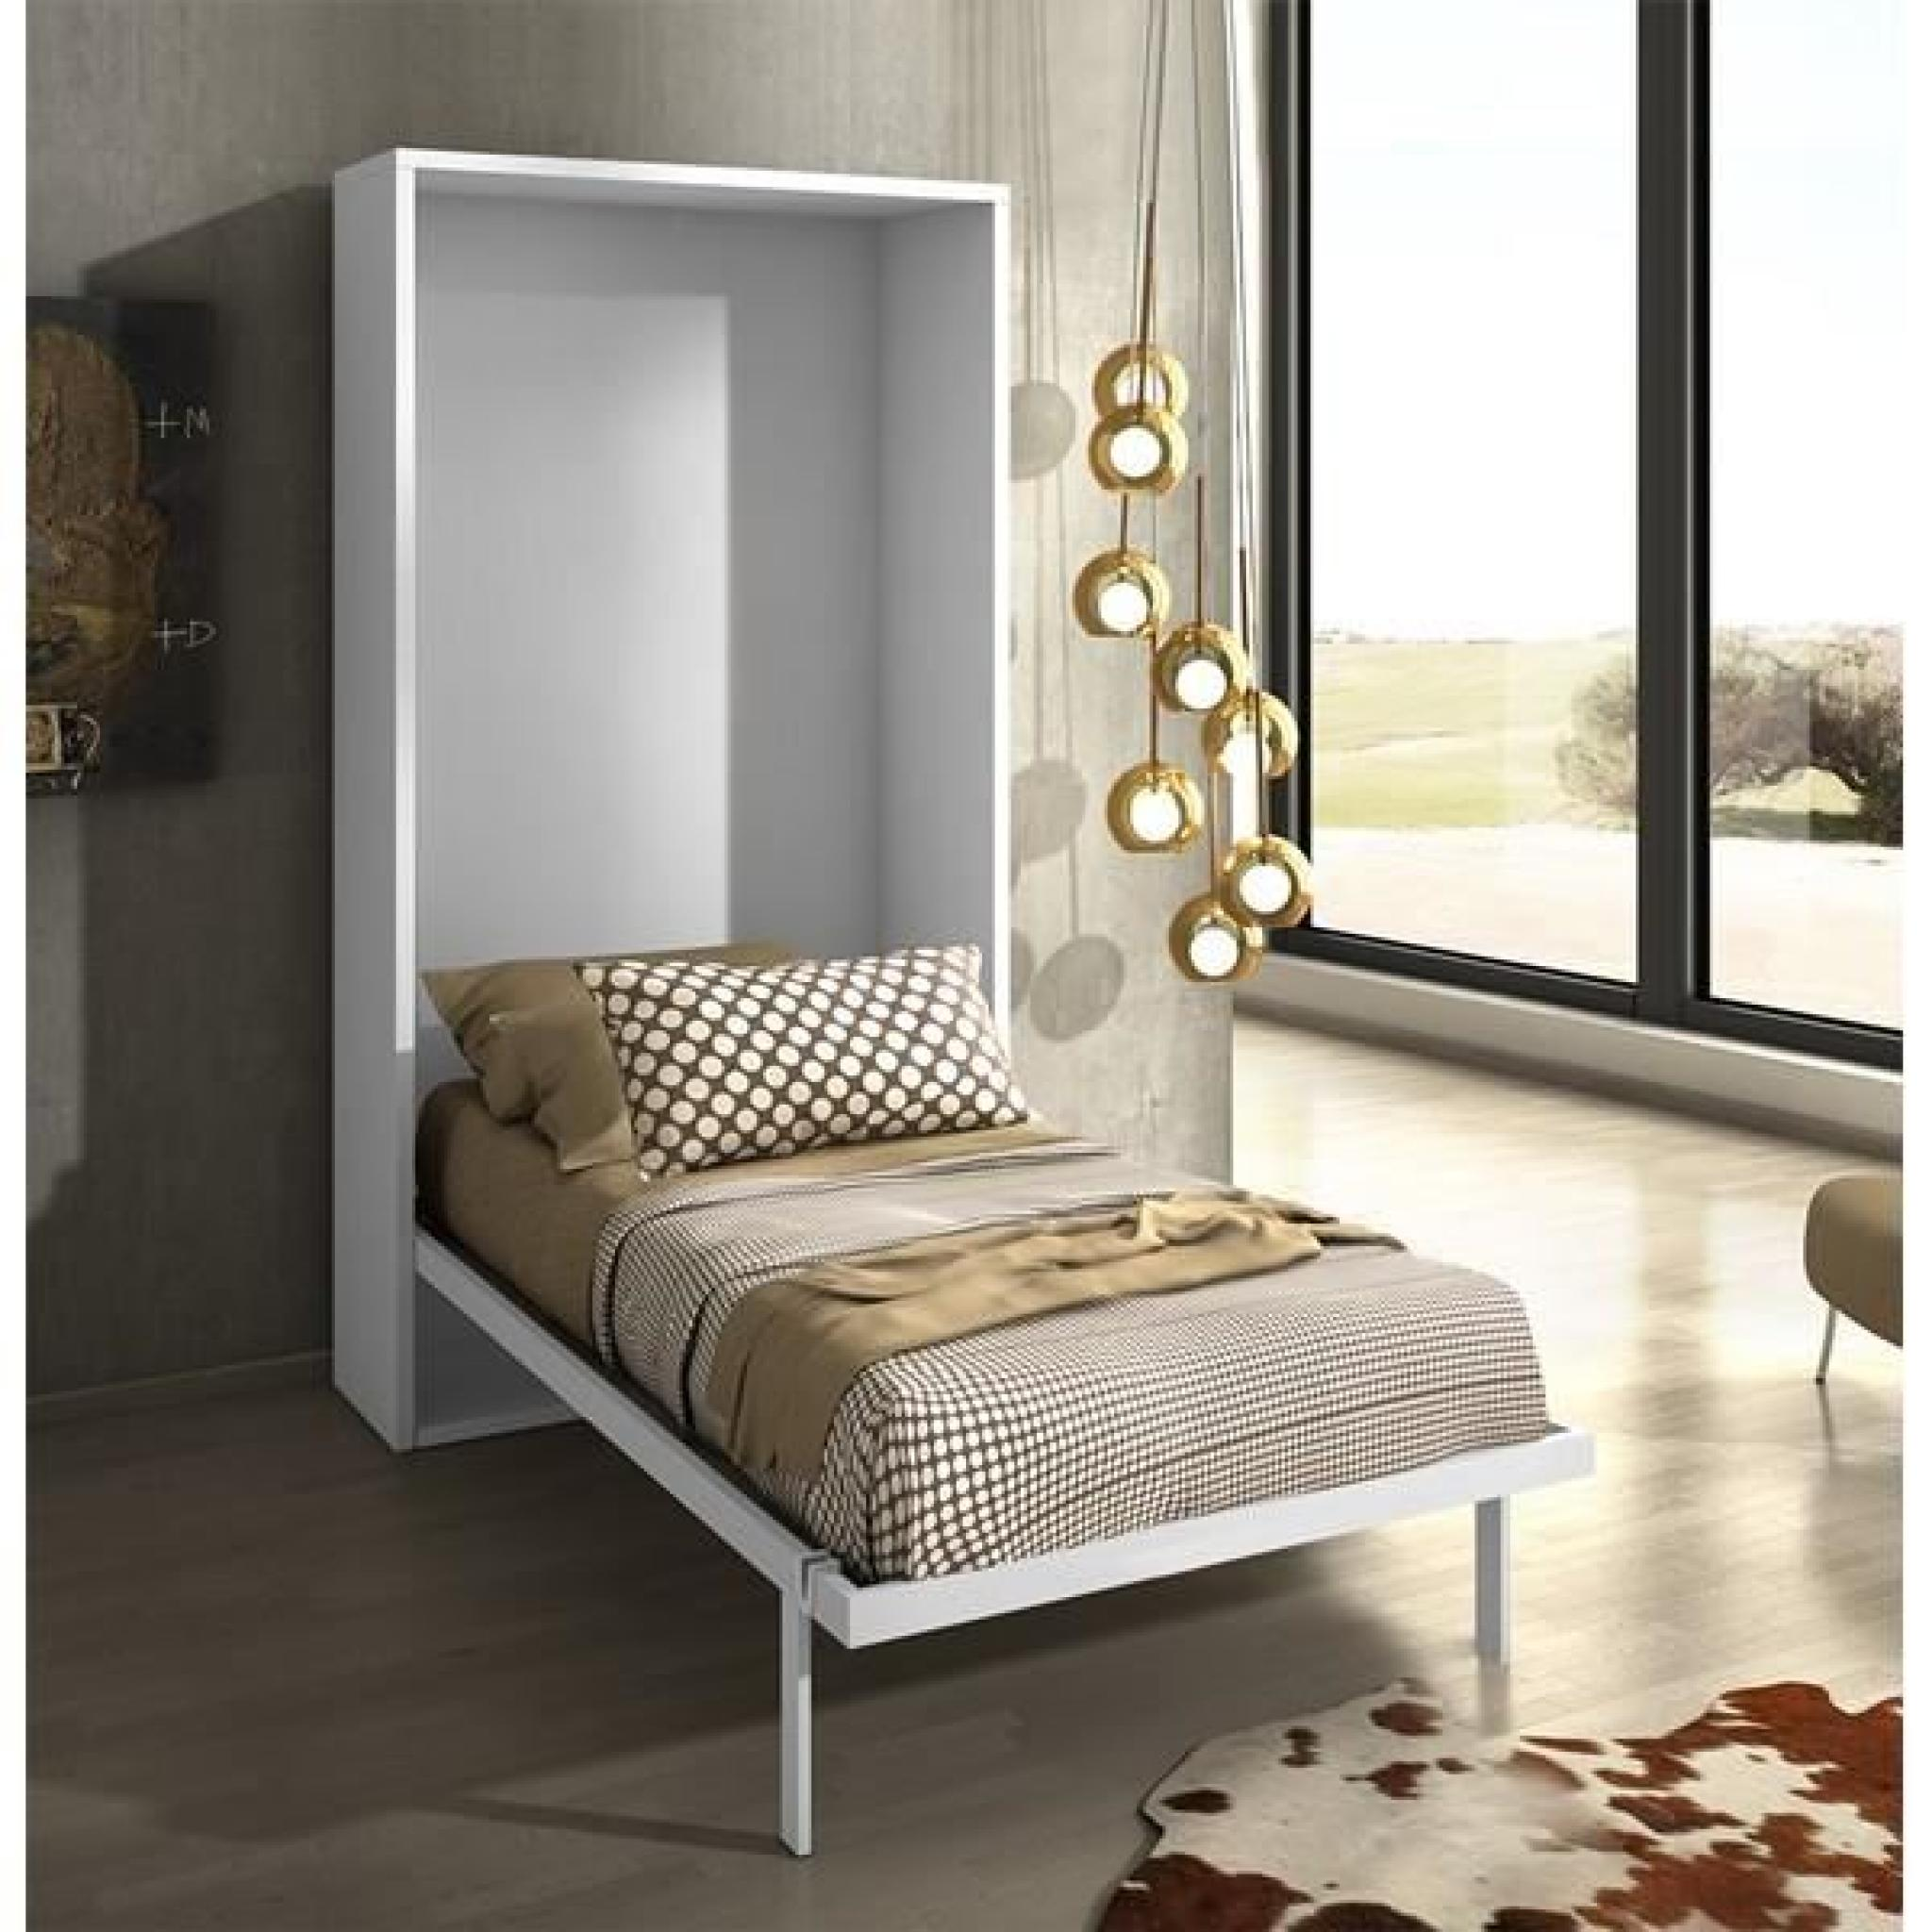 armoire lit escamotable joy ch ne blanc 90x200 achat vente lit escamotable pas cher couleur. Black Bedroom Furniture Sets. Home Design Ideas